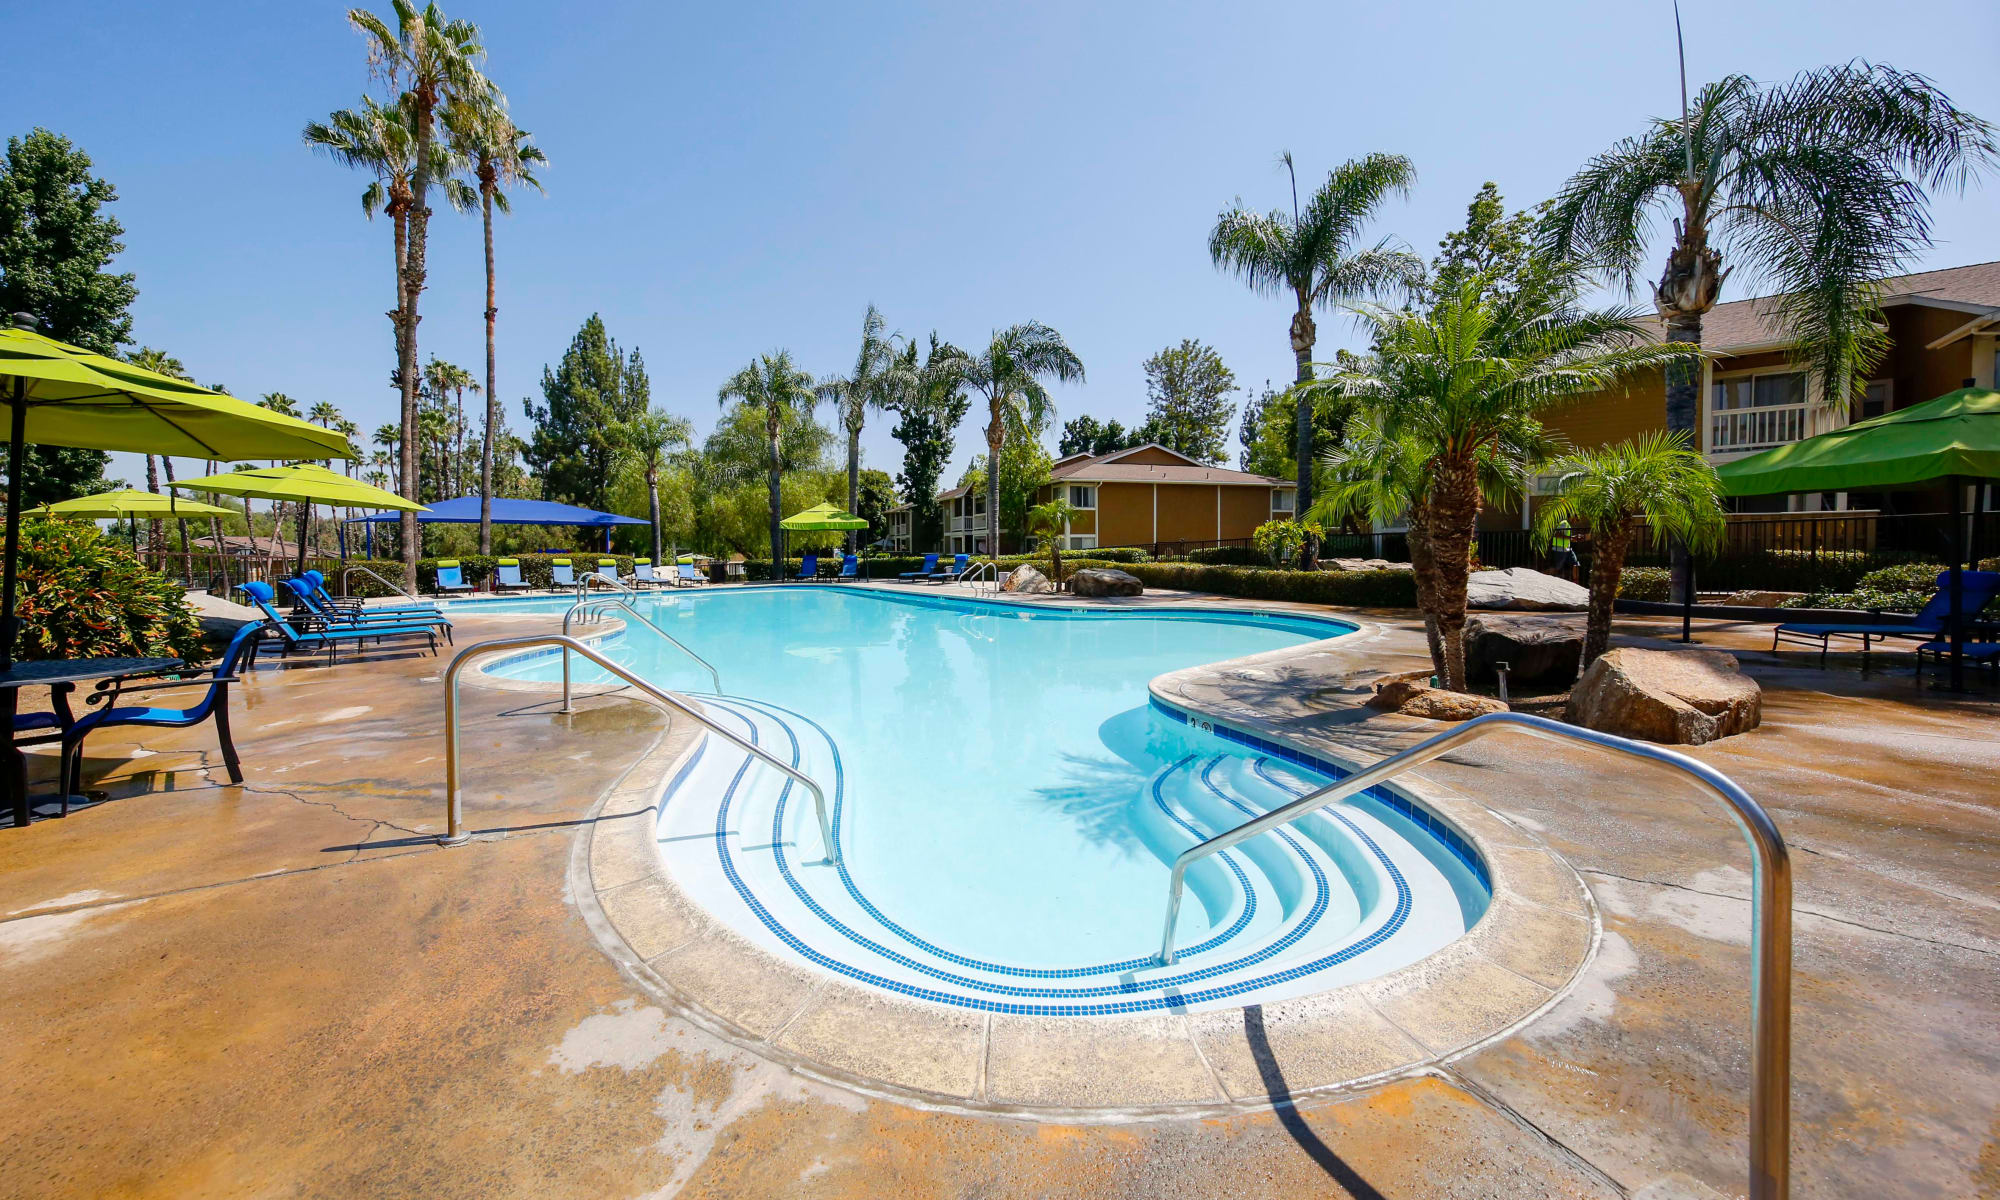 Resort-style swimming pool at Redlands Lawn and Tennis Club